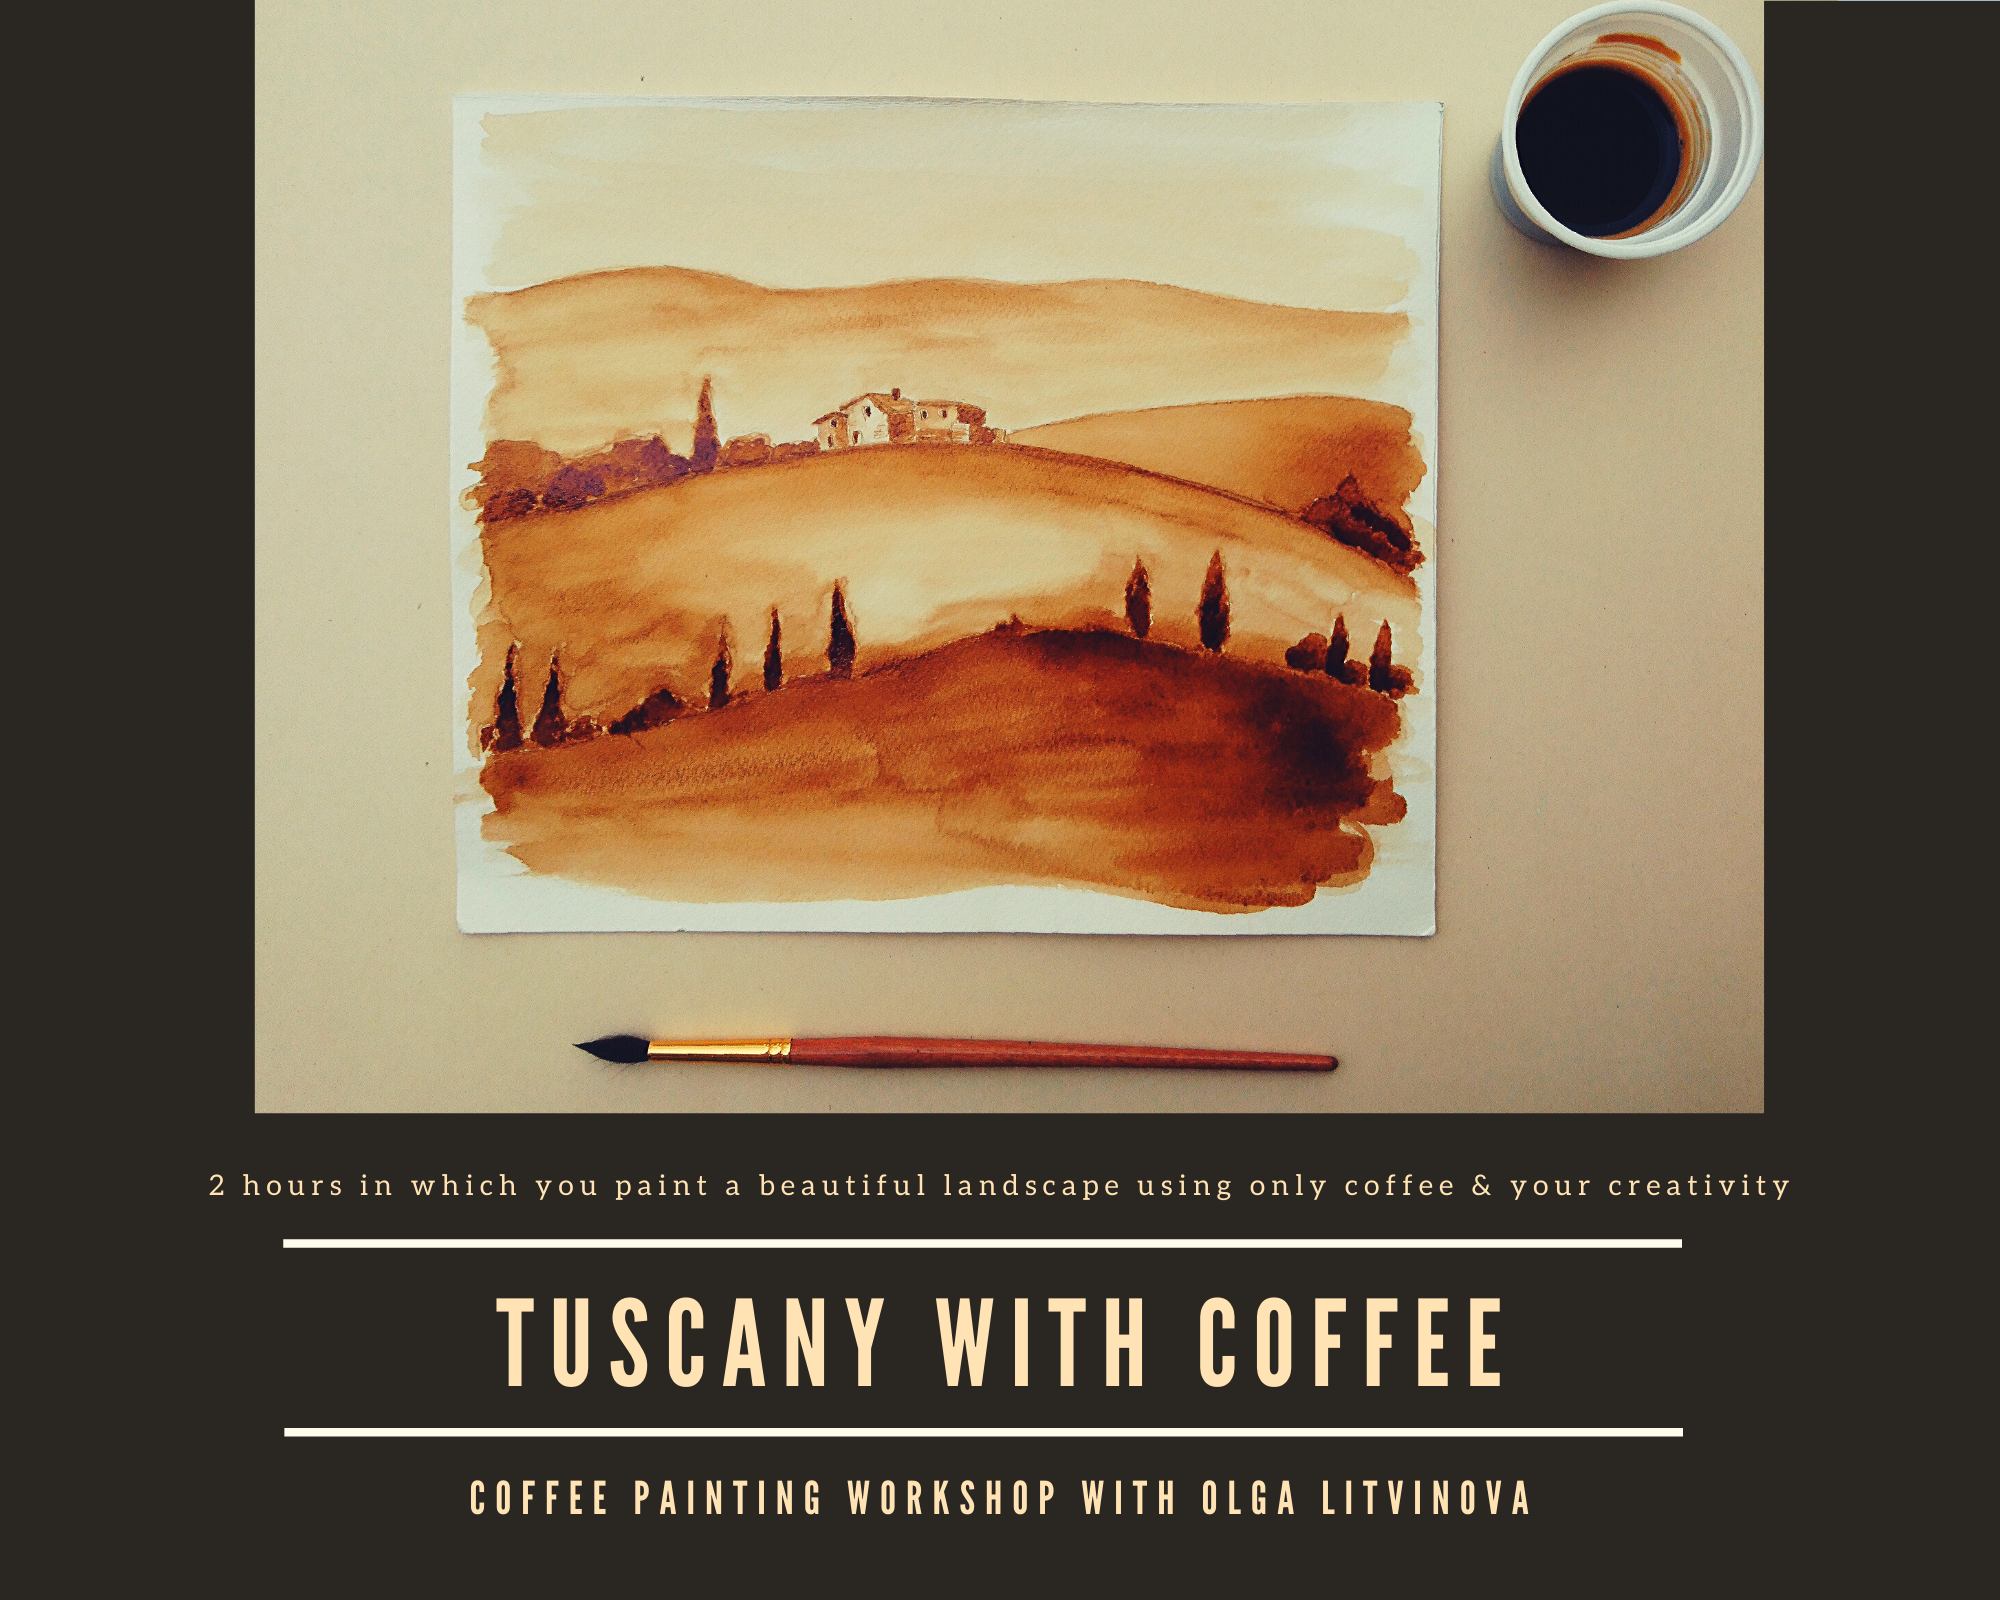 Tuscany with coffee